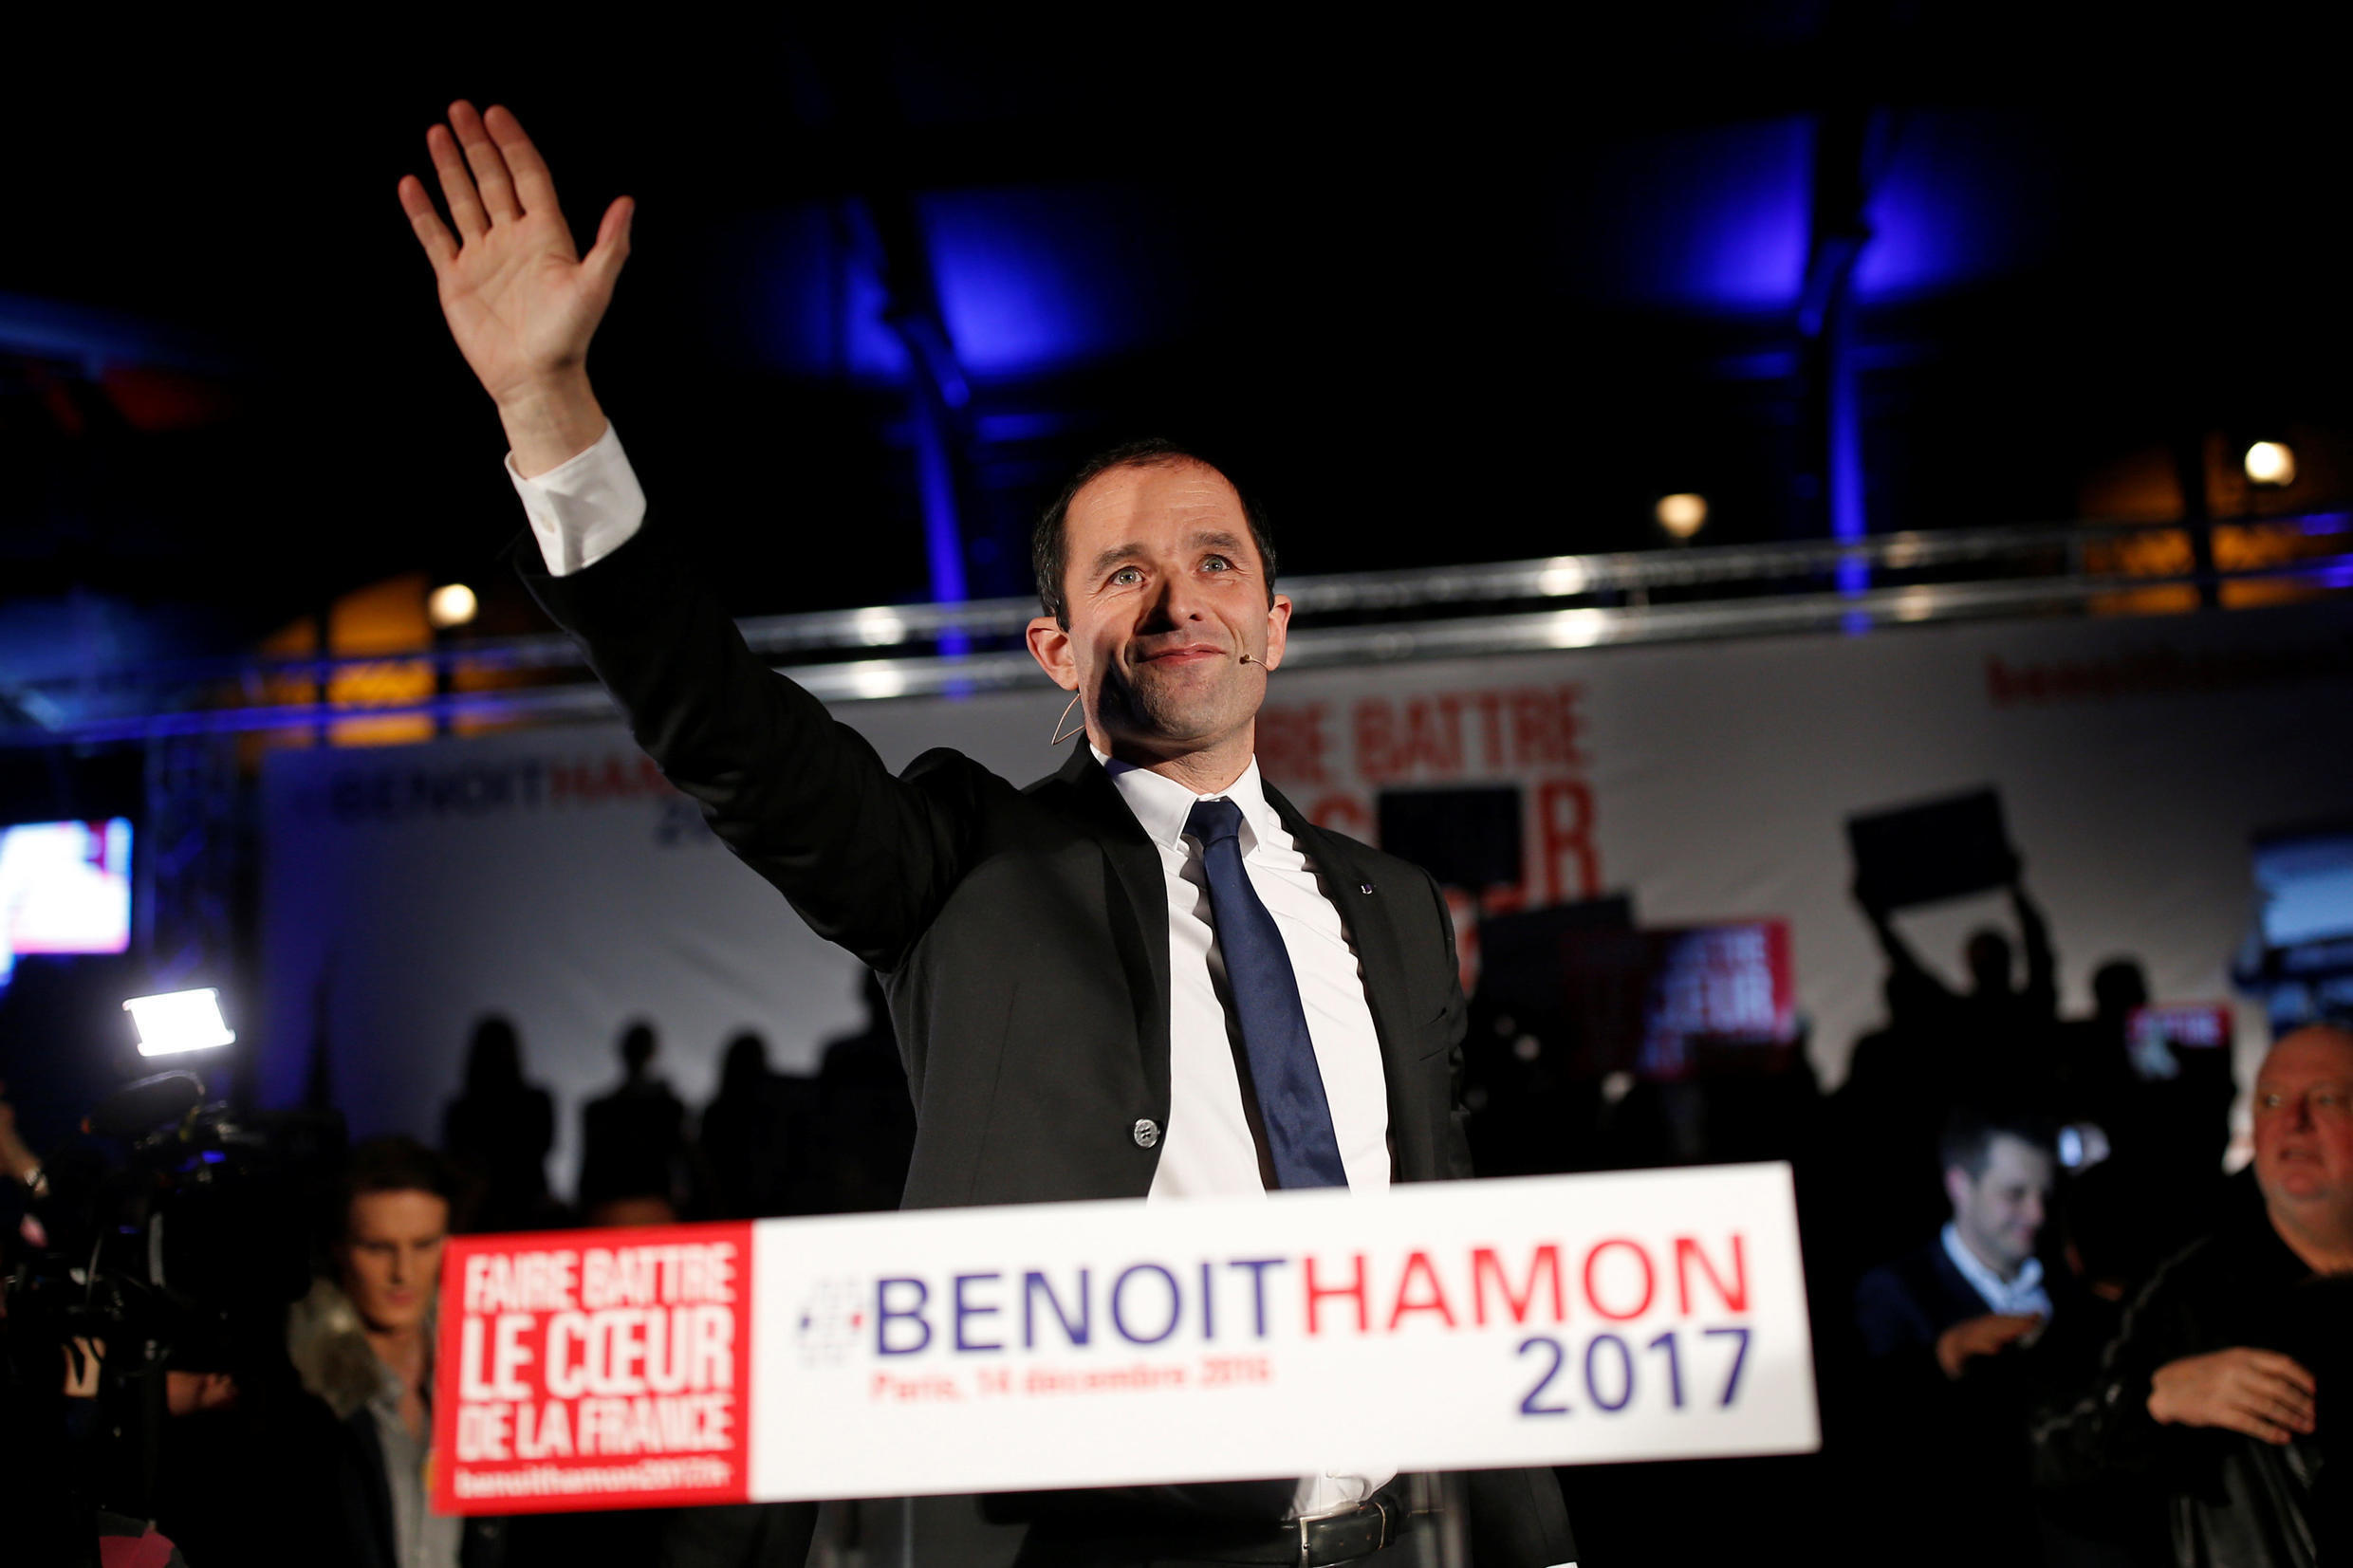 Socialist Presidential Primary Benoit Hamon has made Universal Basic Income one of the key proposal of his campaign.